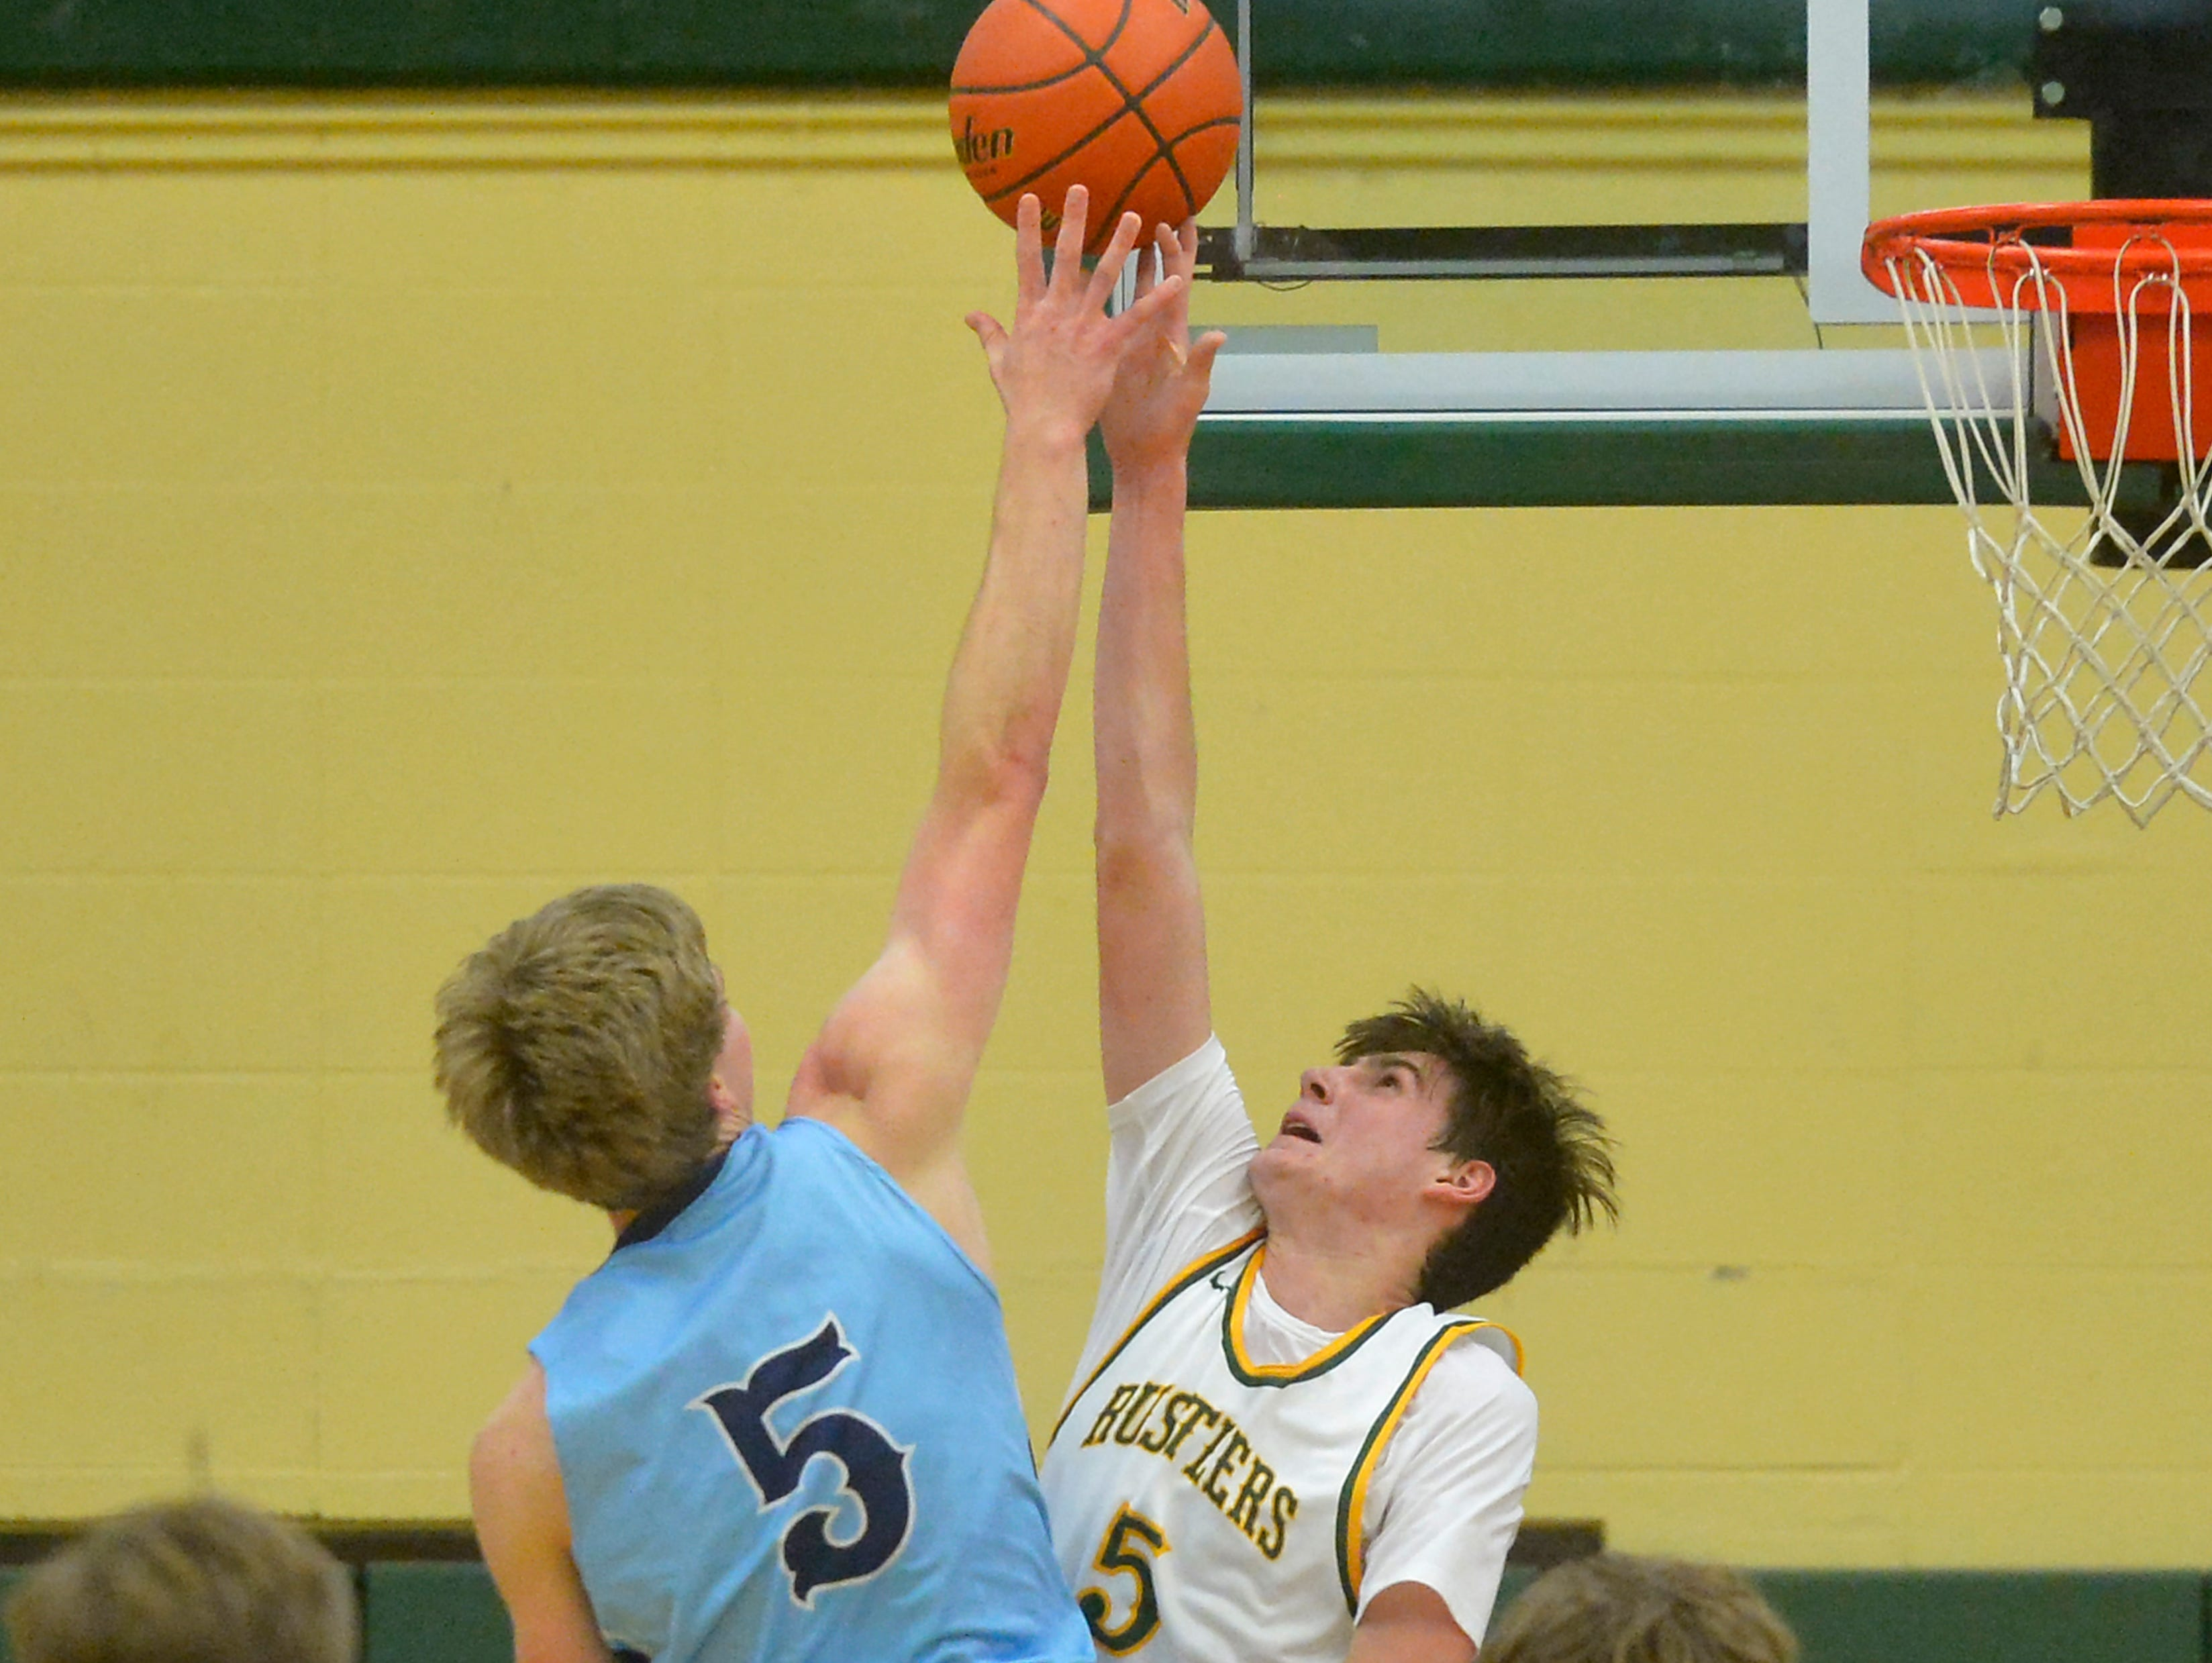 CMR's Brendan Lindseth attempts to block the shot of Great Falls High's Riley Callery during the boys' crosstown basketball game, Thursday night in the CMR Fieldhouse.